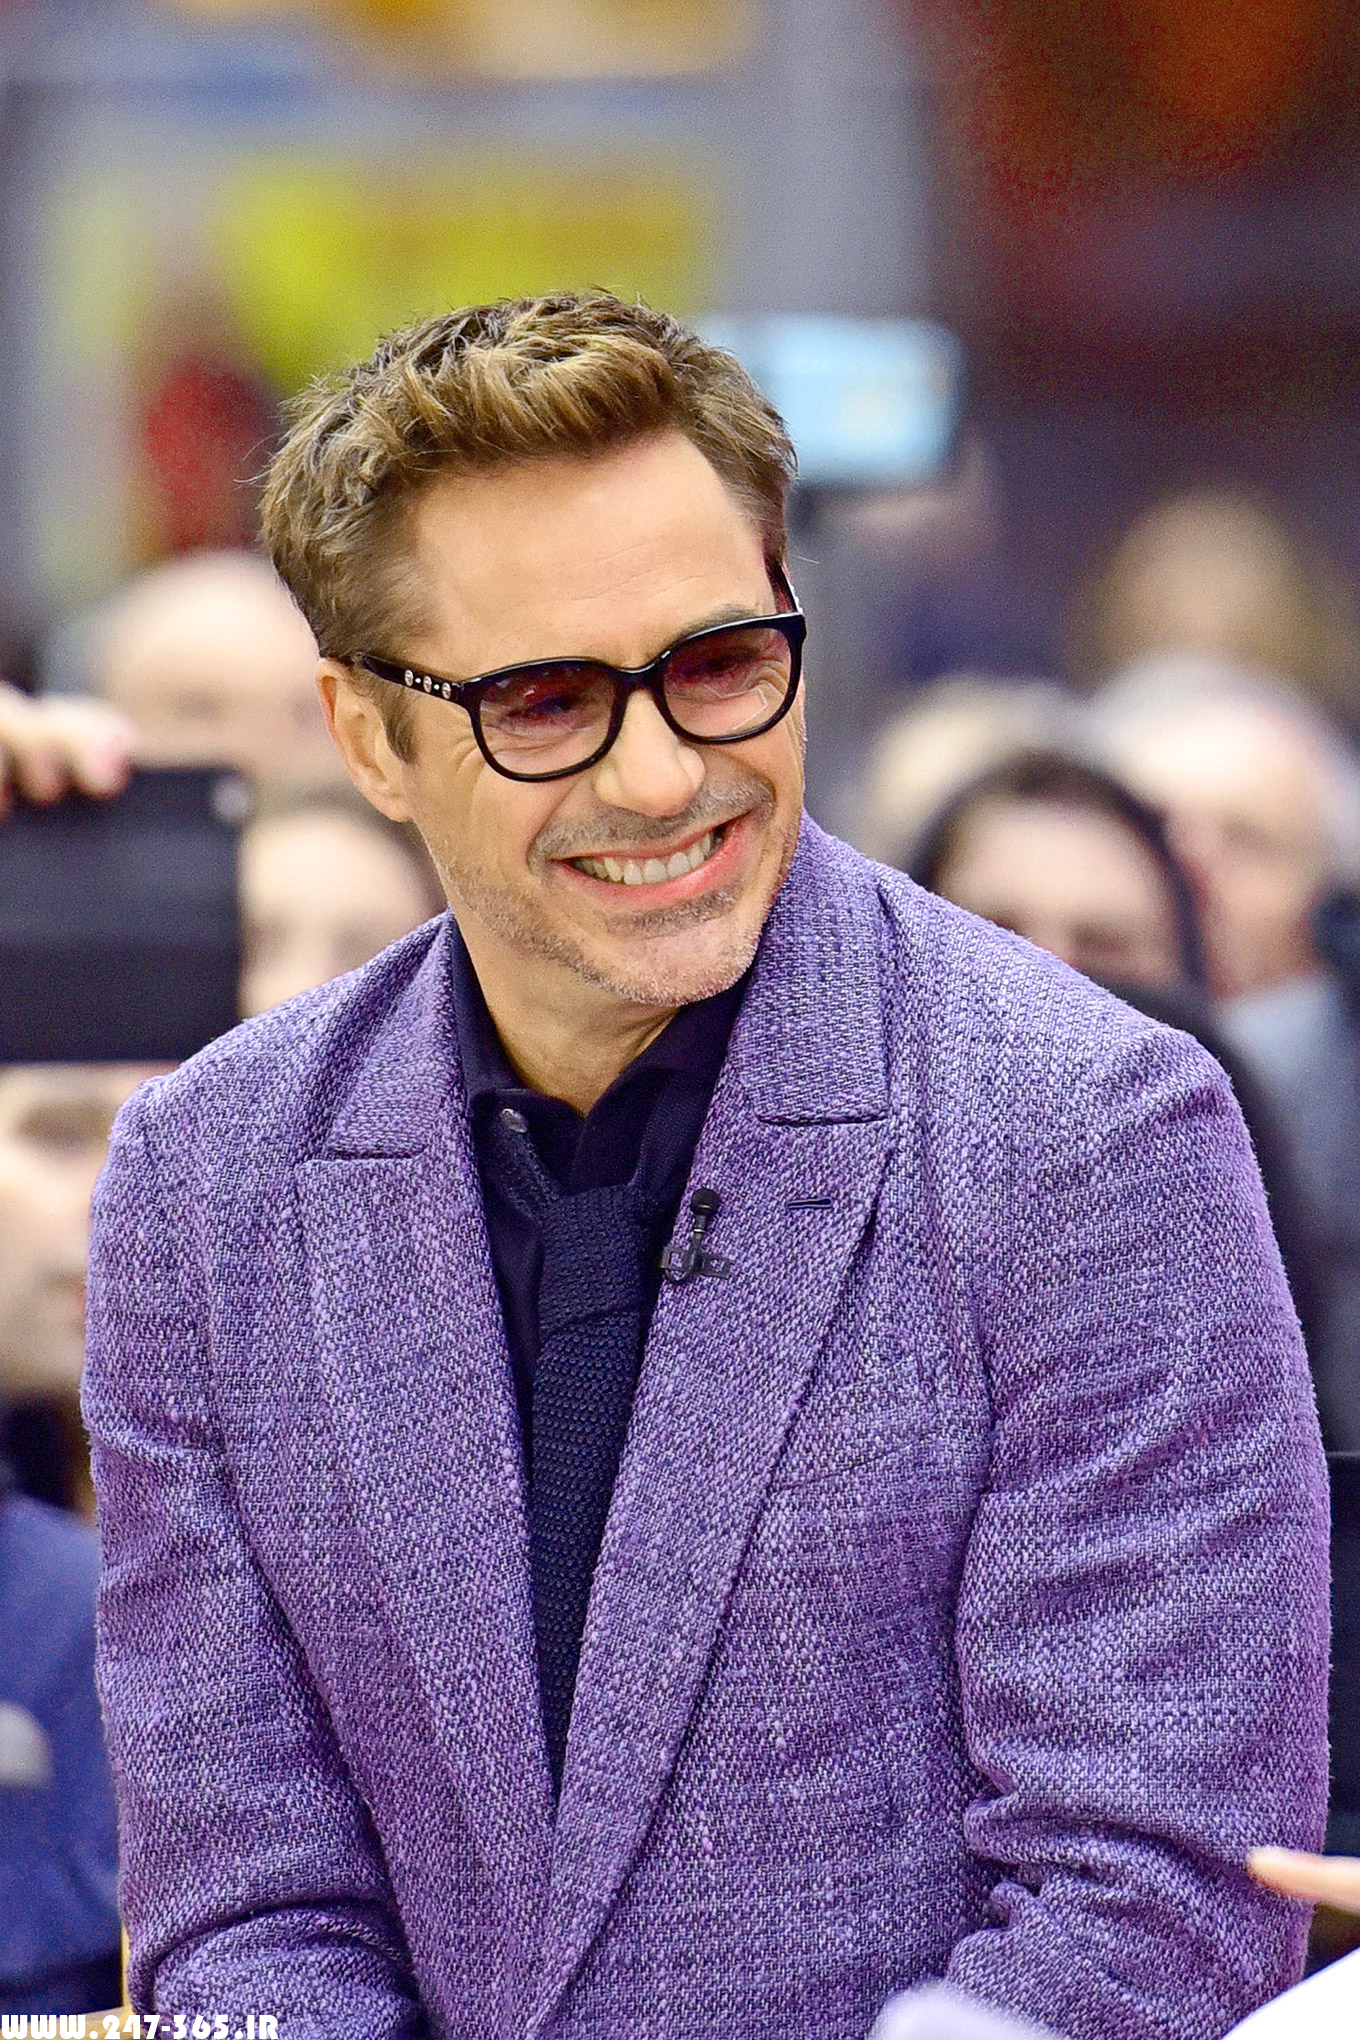 http://dl.247-365.ir/pic/celebrity/robert_downey_jr_2/Robert_Downey_Jr_2_17.jpg